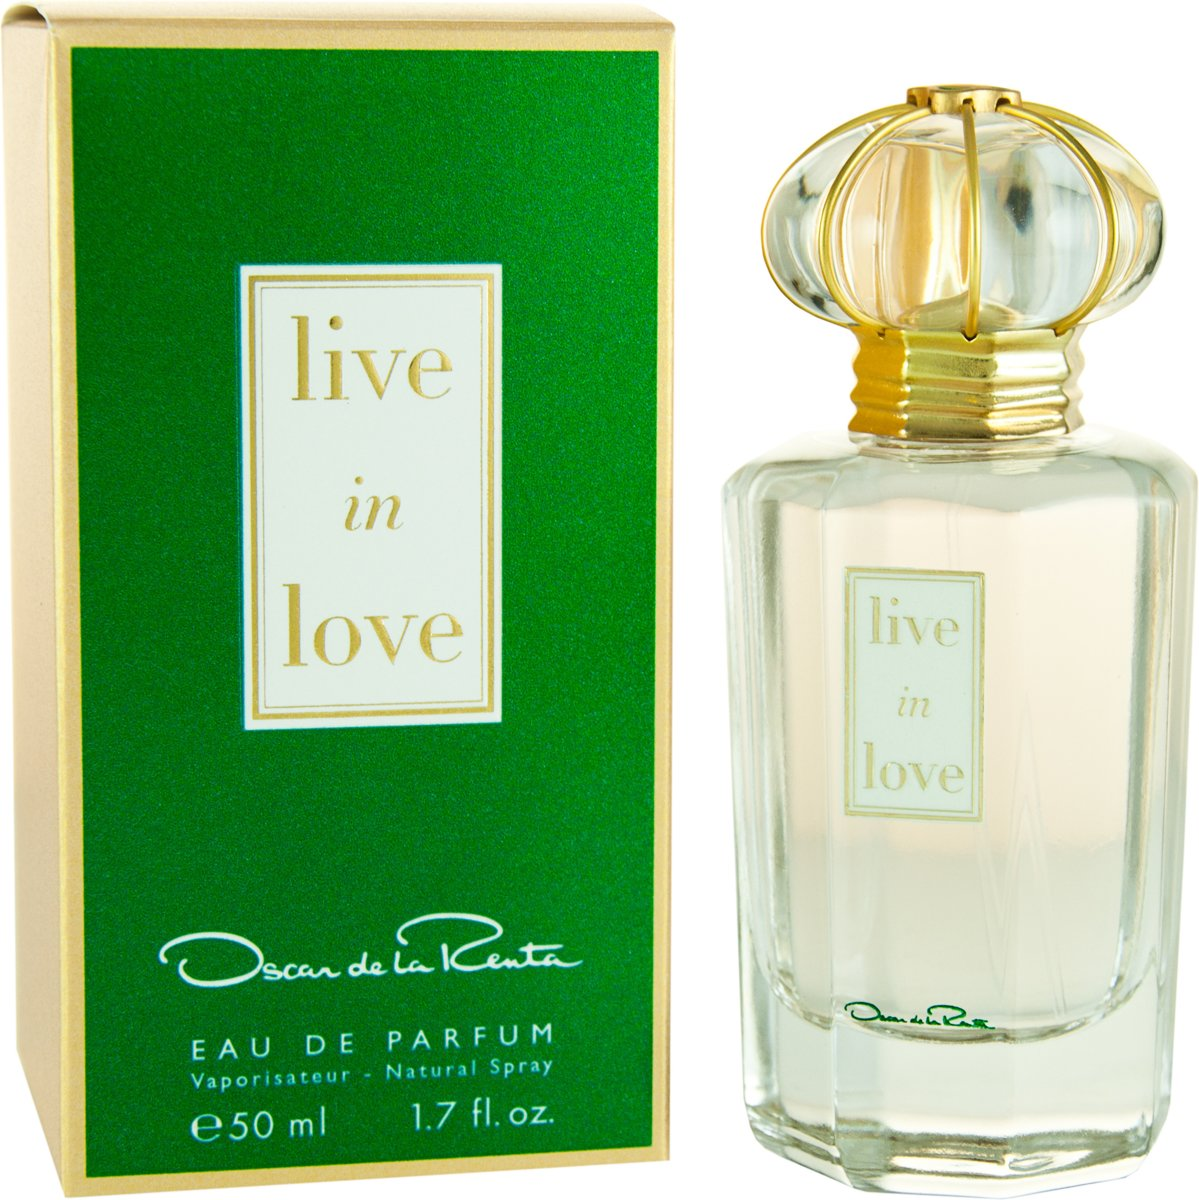 Oscar de la Renta Live in Love for Woman - 50 ml - Eau de parfum